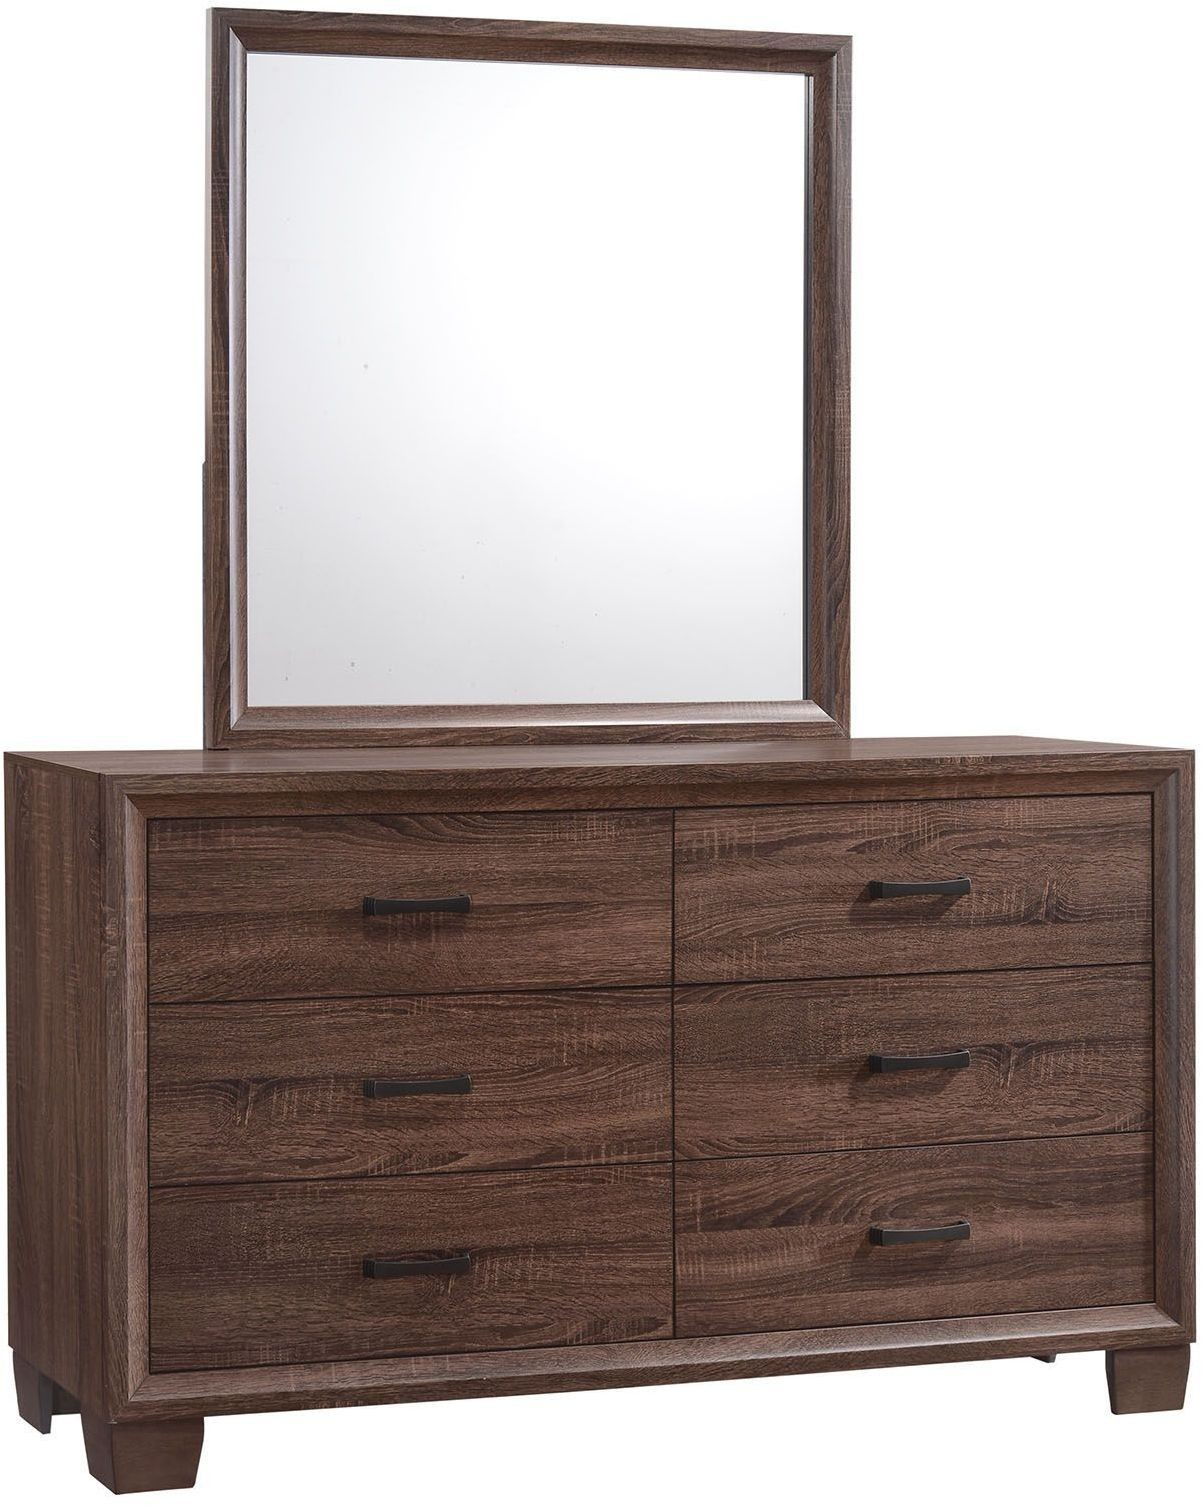 Brandon brown dresser 205323 coaster furniture for Affordable furniture brandon